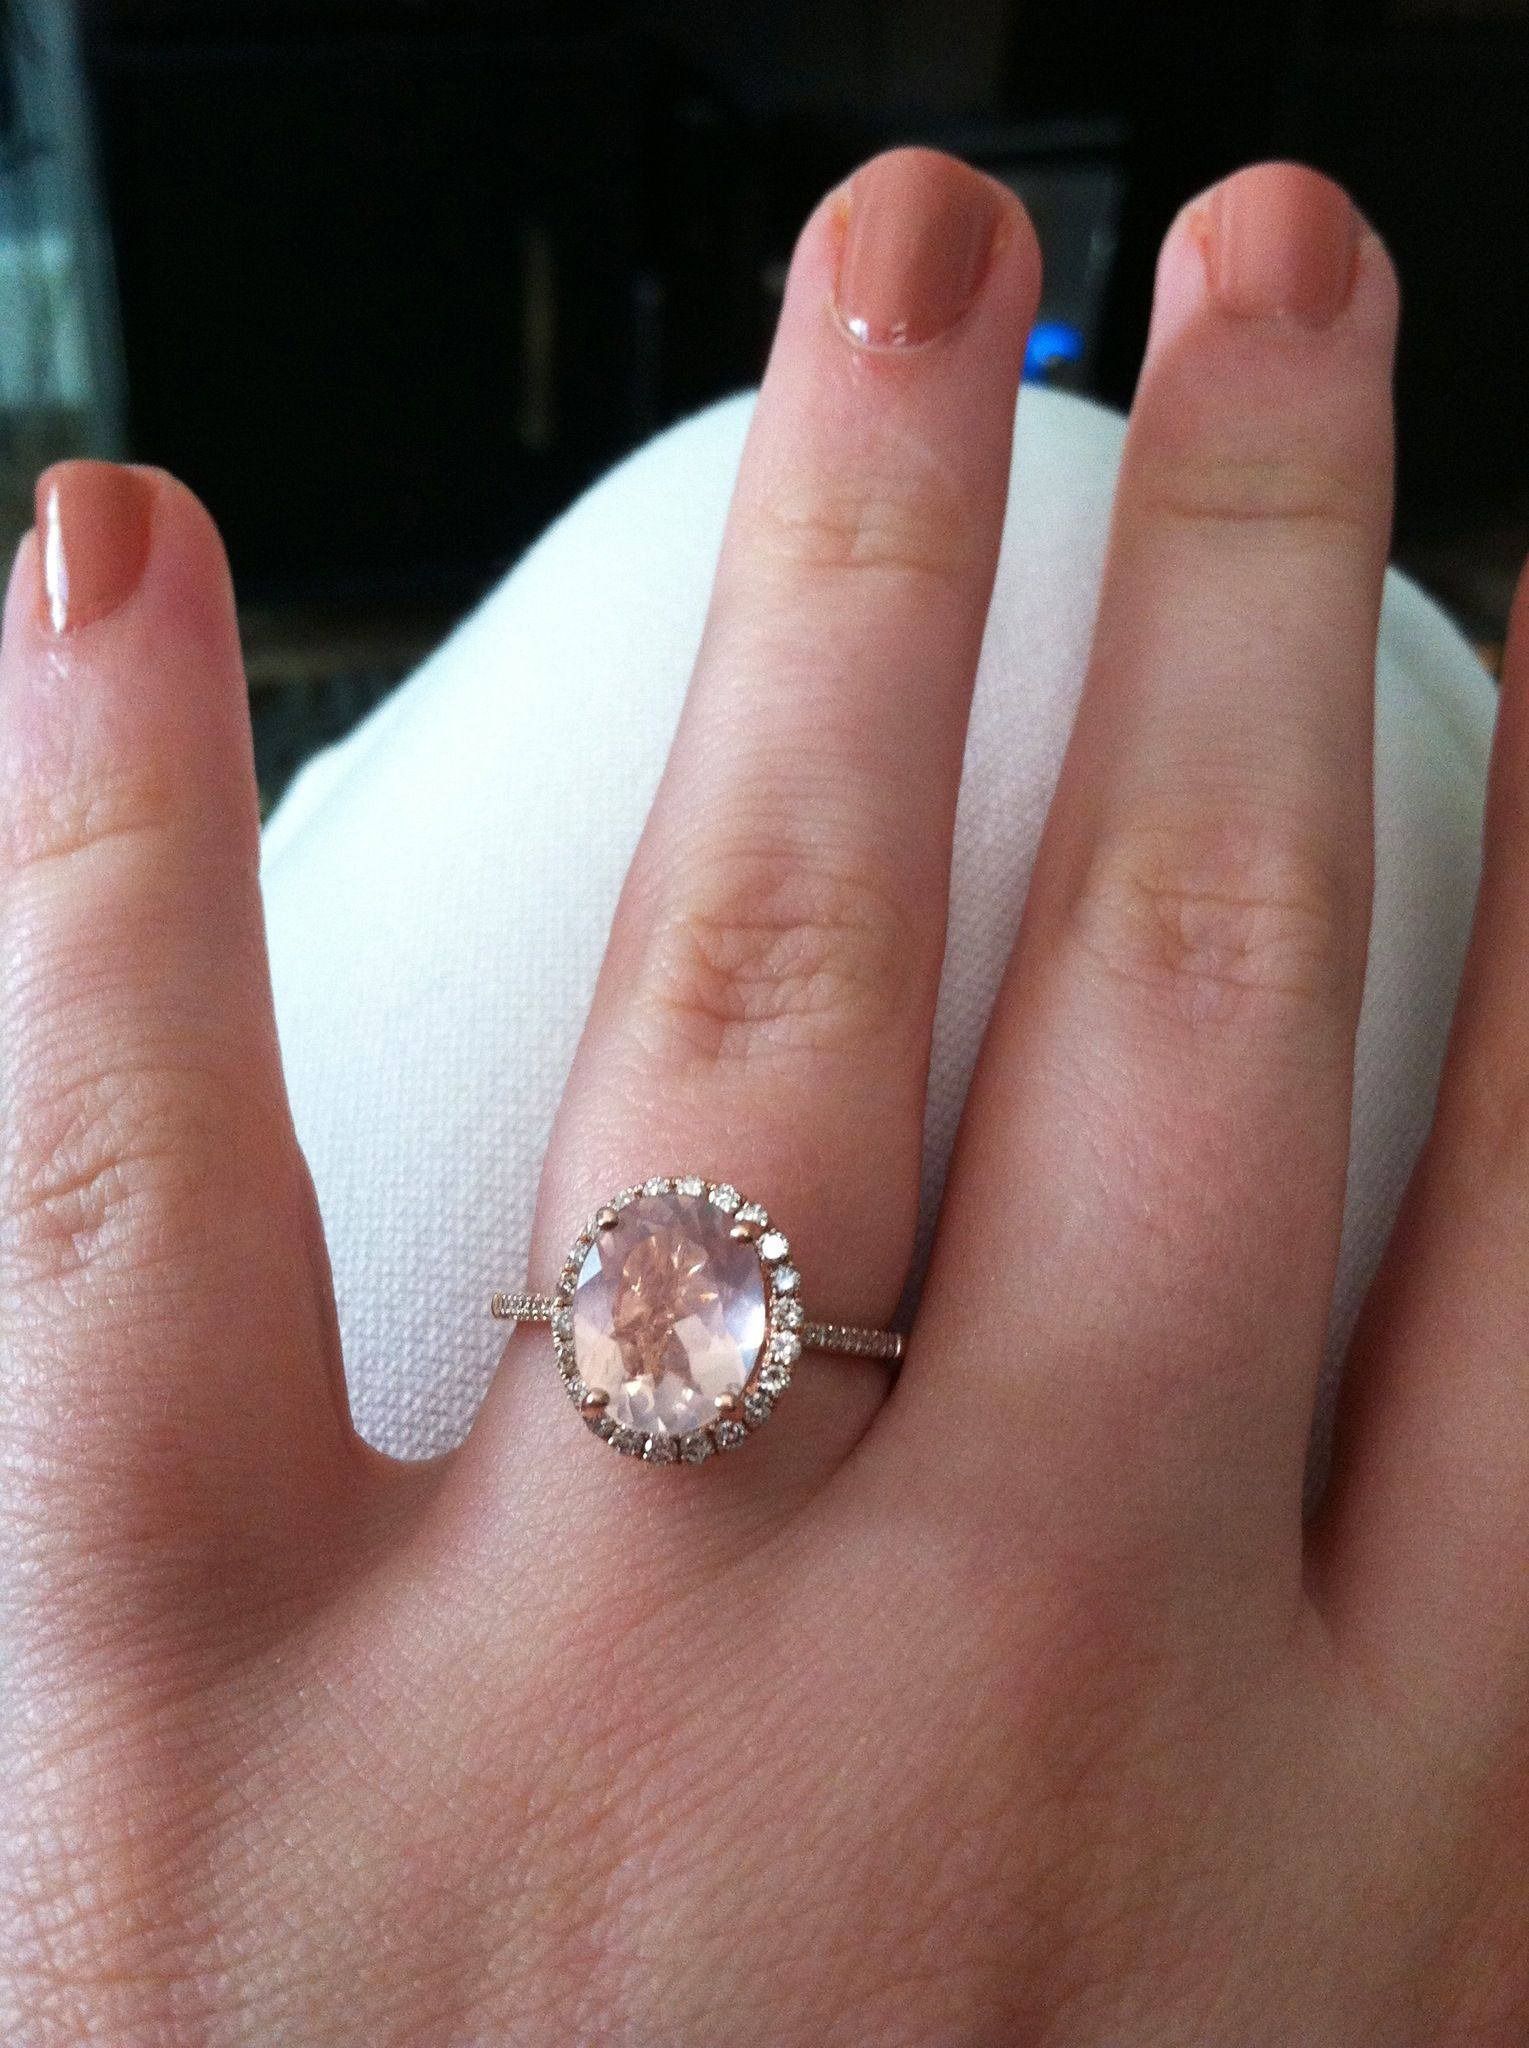 Pregnant Teresa Palmer shows off her engagement ring | HELLO!